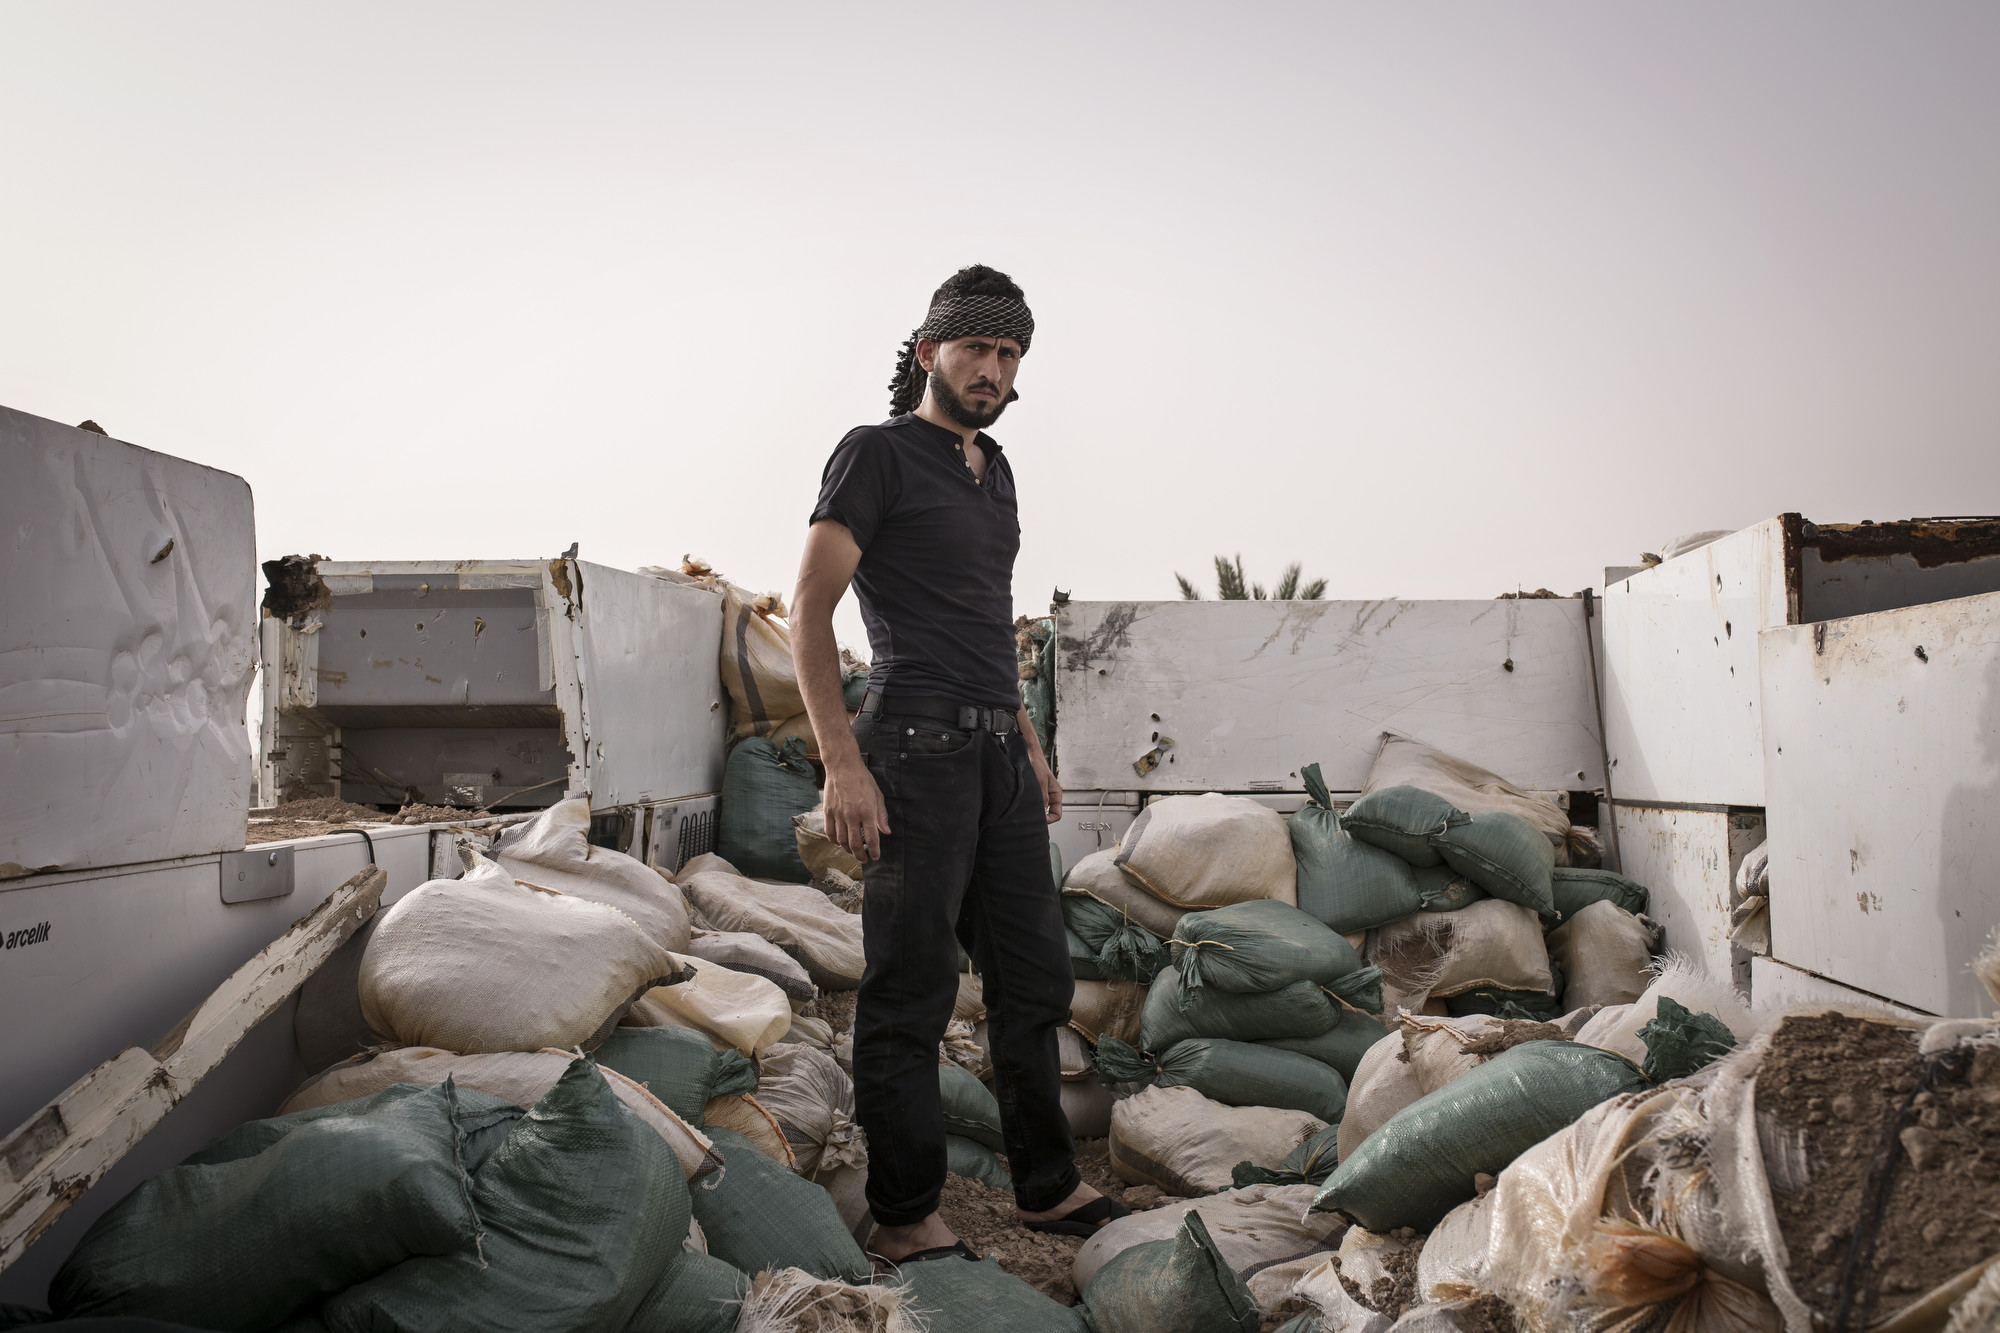 A Turkman resident stands in an improvised fighting position.